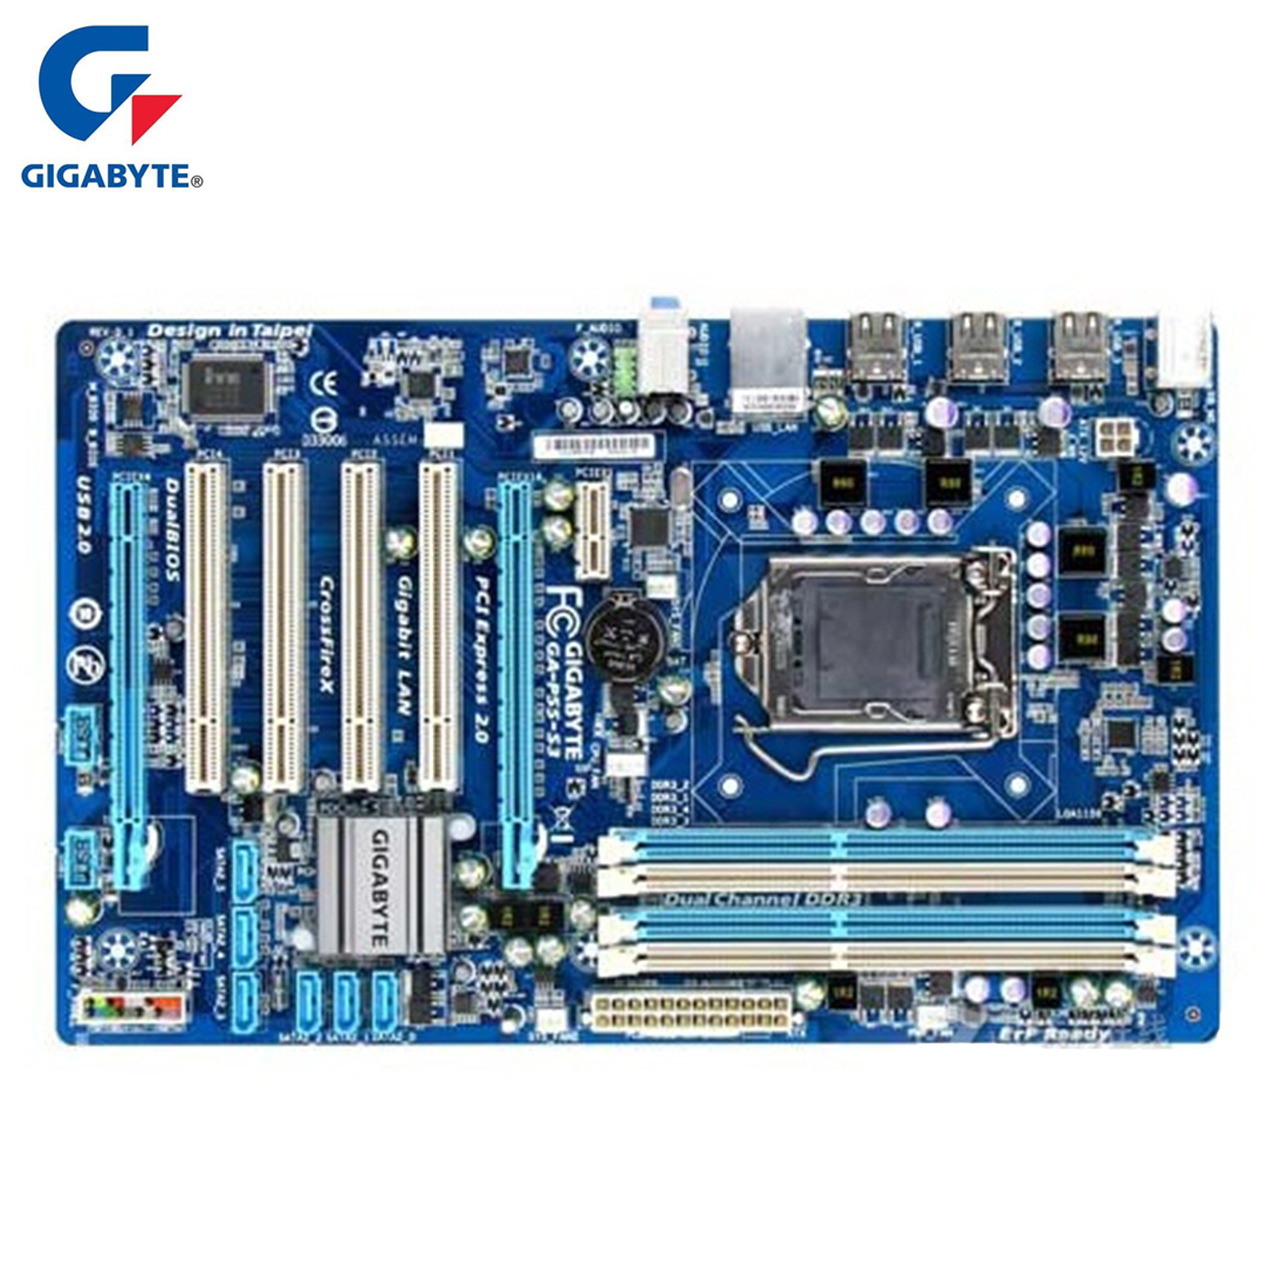 цена на Gigabyte GA-P55-S3 100% Original Motherboard LGA 1156 DDR3 16G H55 P55 S3 P55-S3 Desktop Mainboard Systemboard Used Mother board